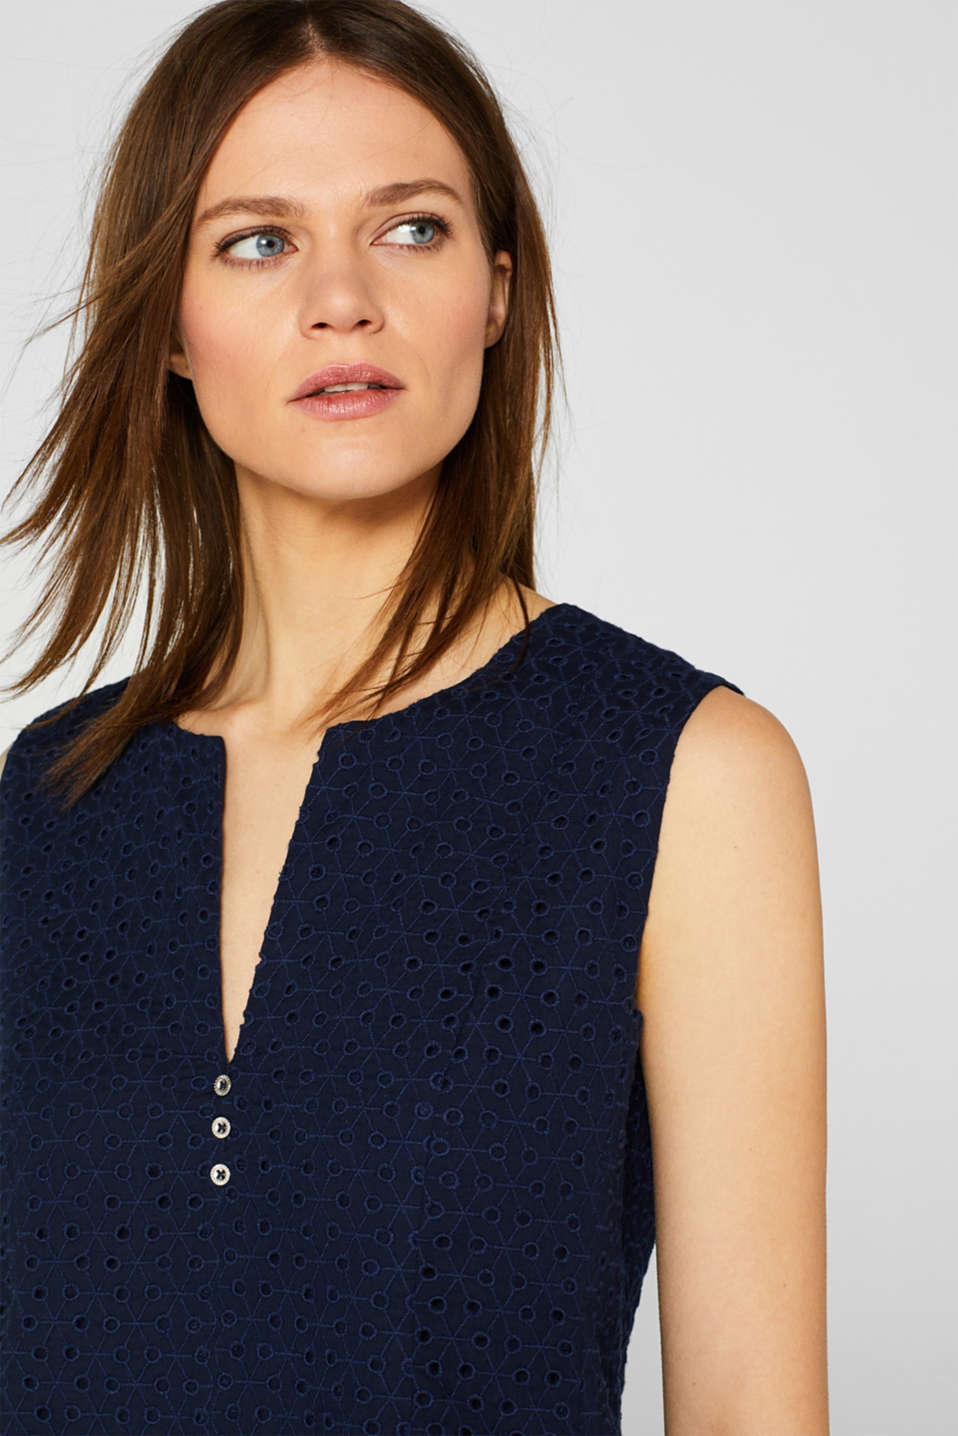 Fitted blouse top with broderie anglaise